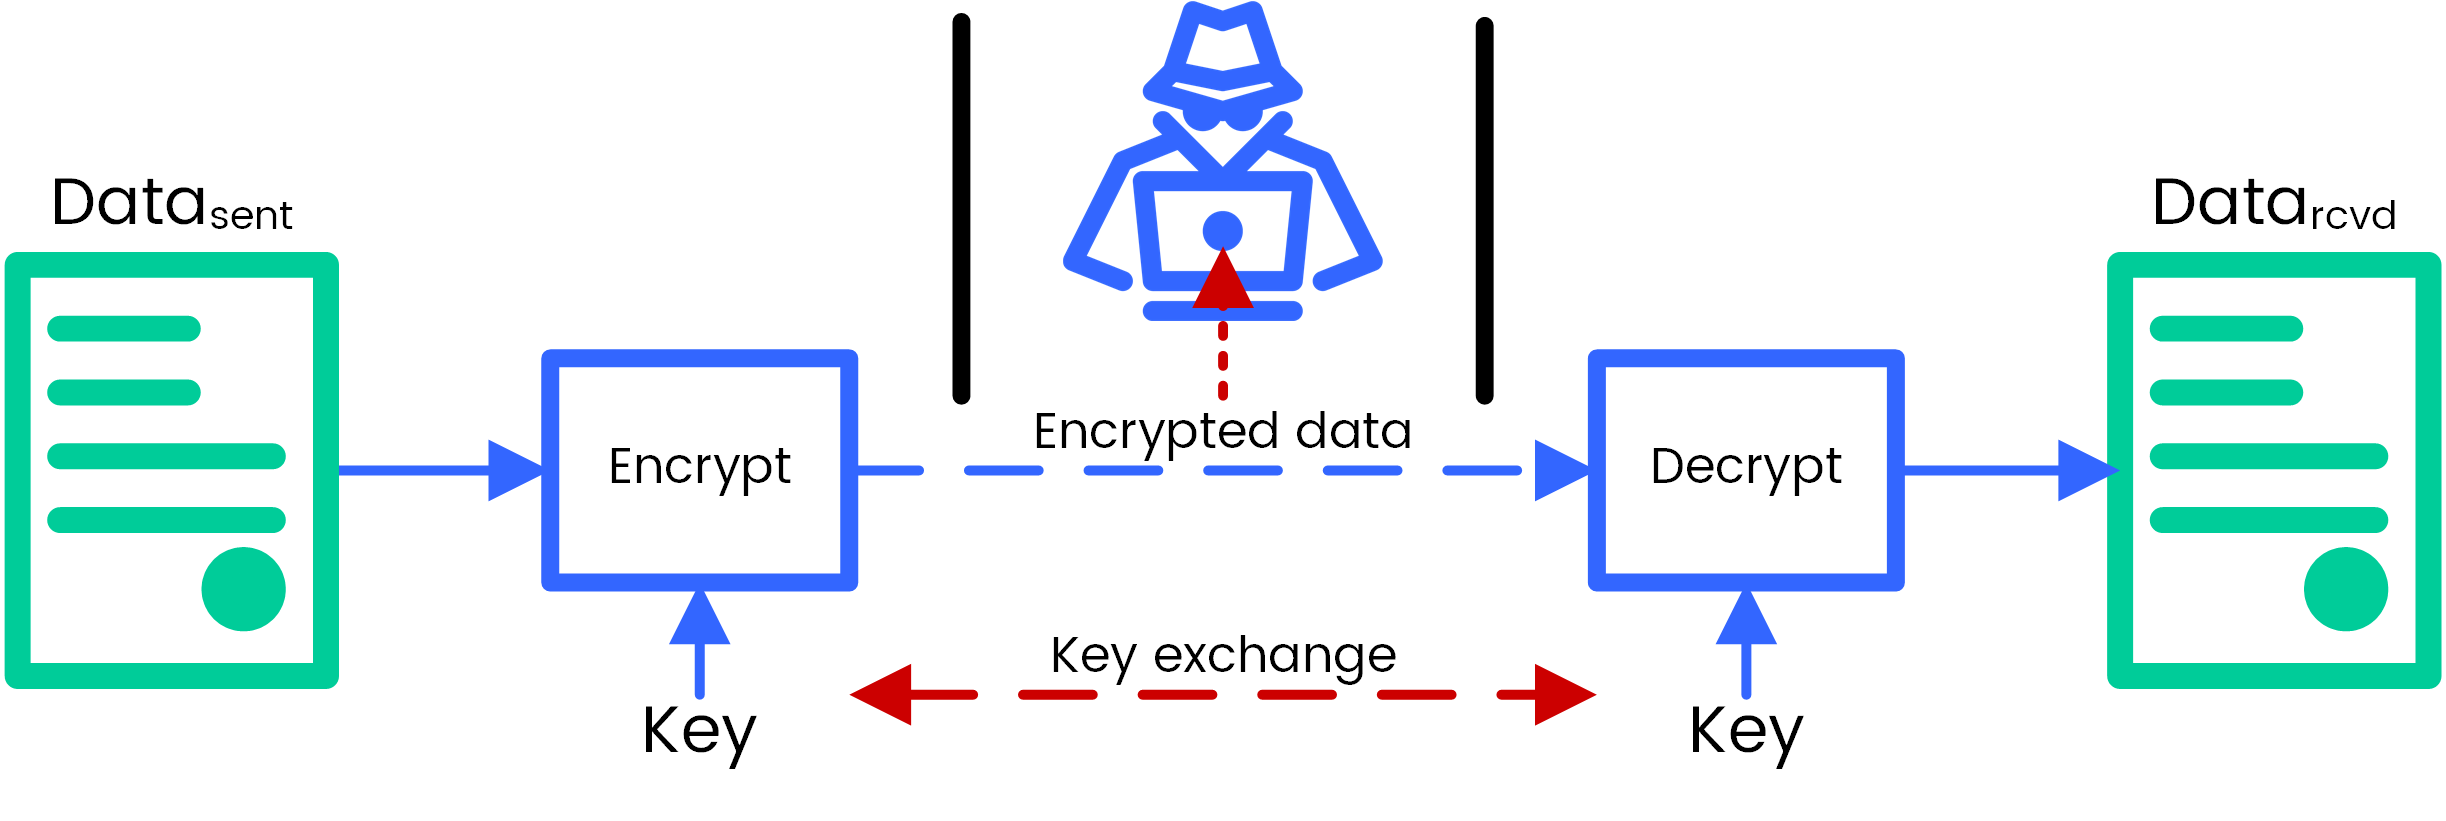 Symmetric encryption with AES